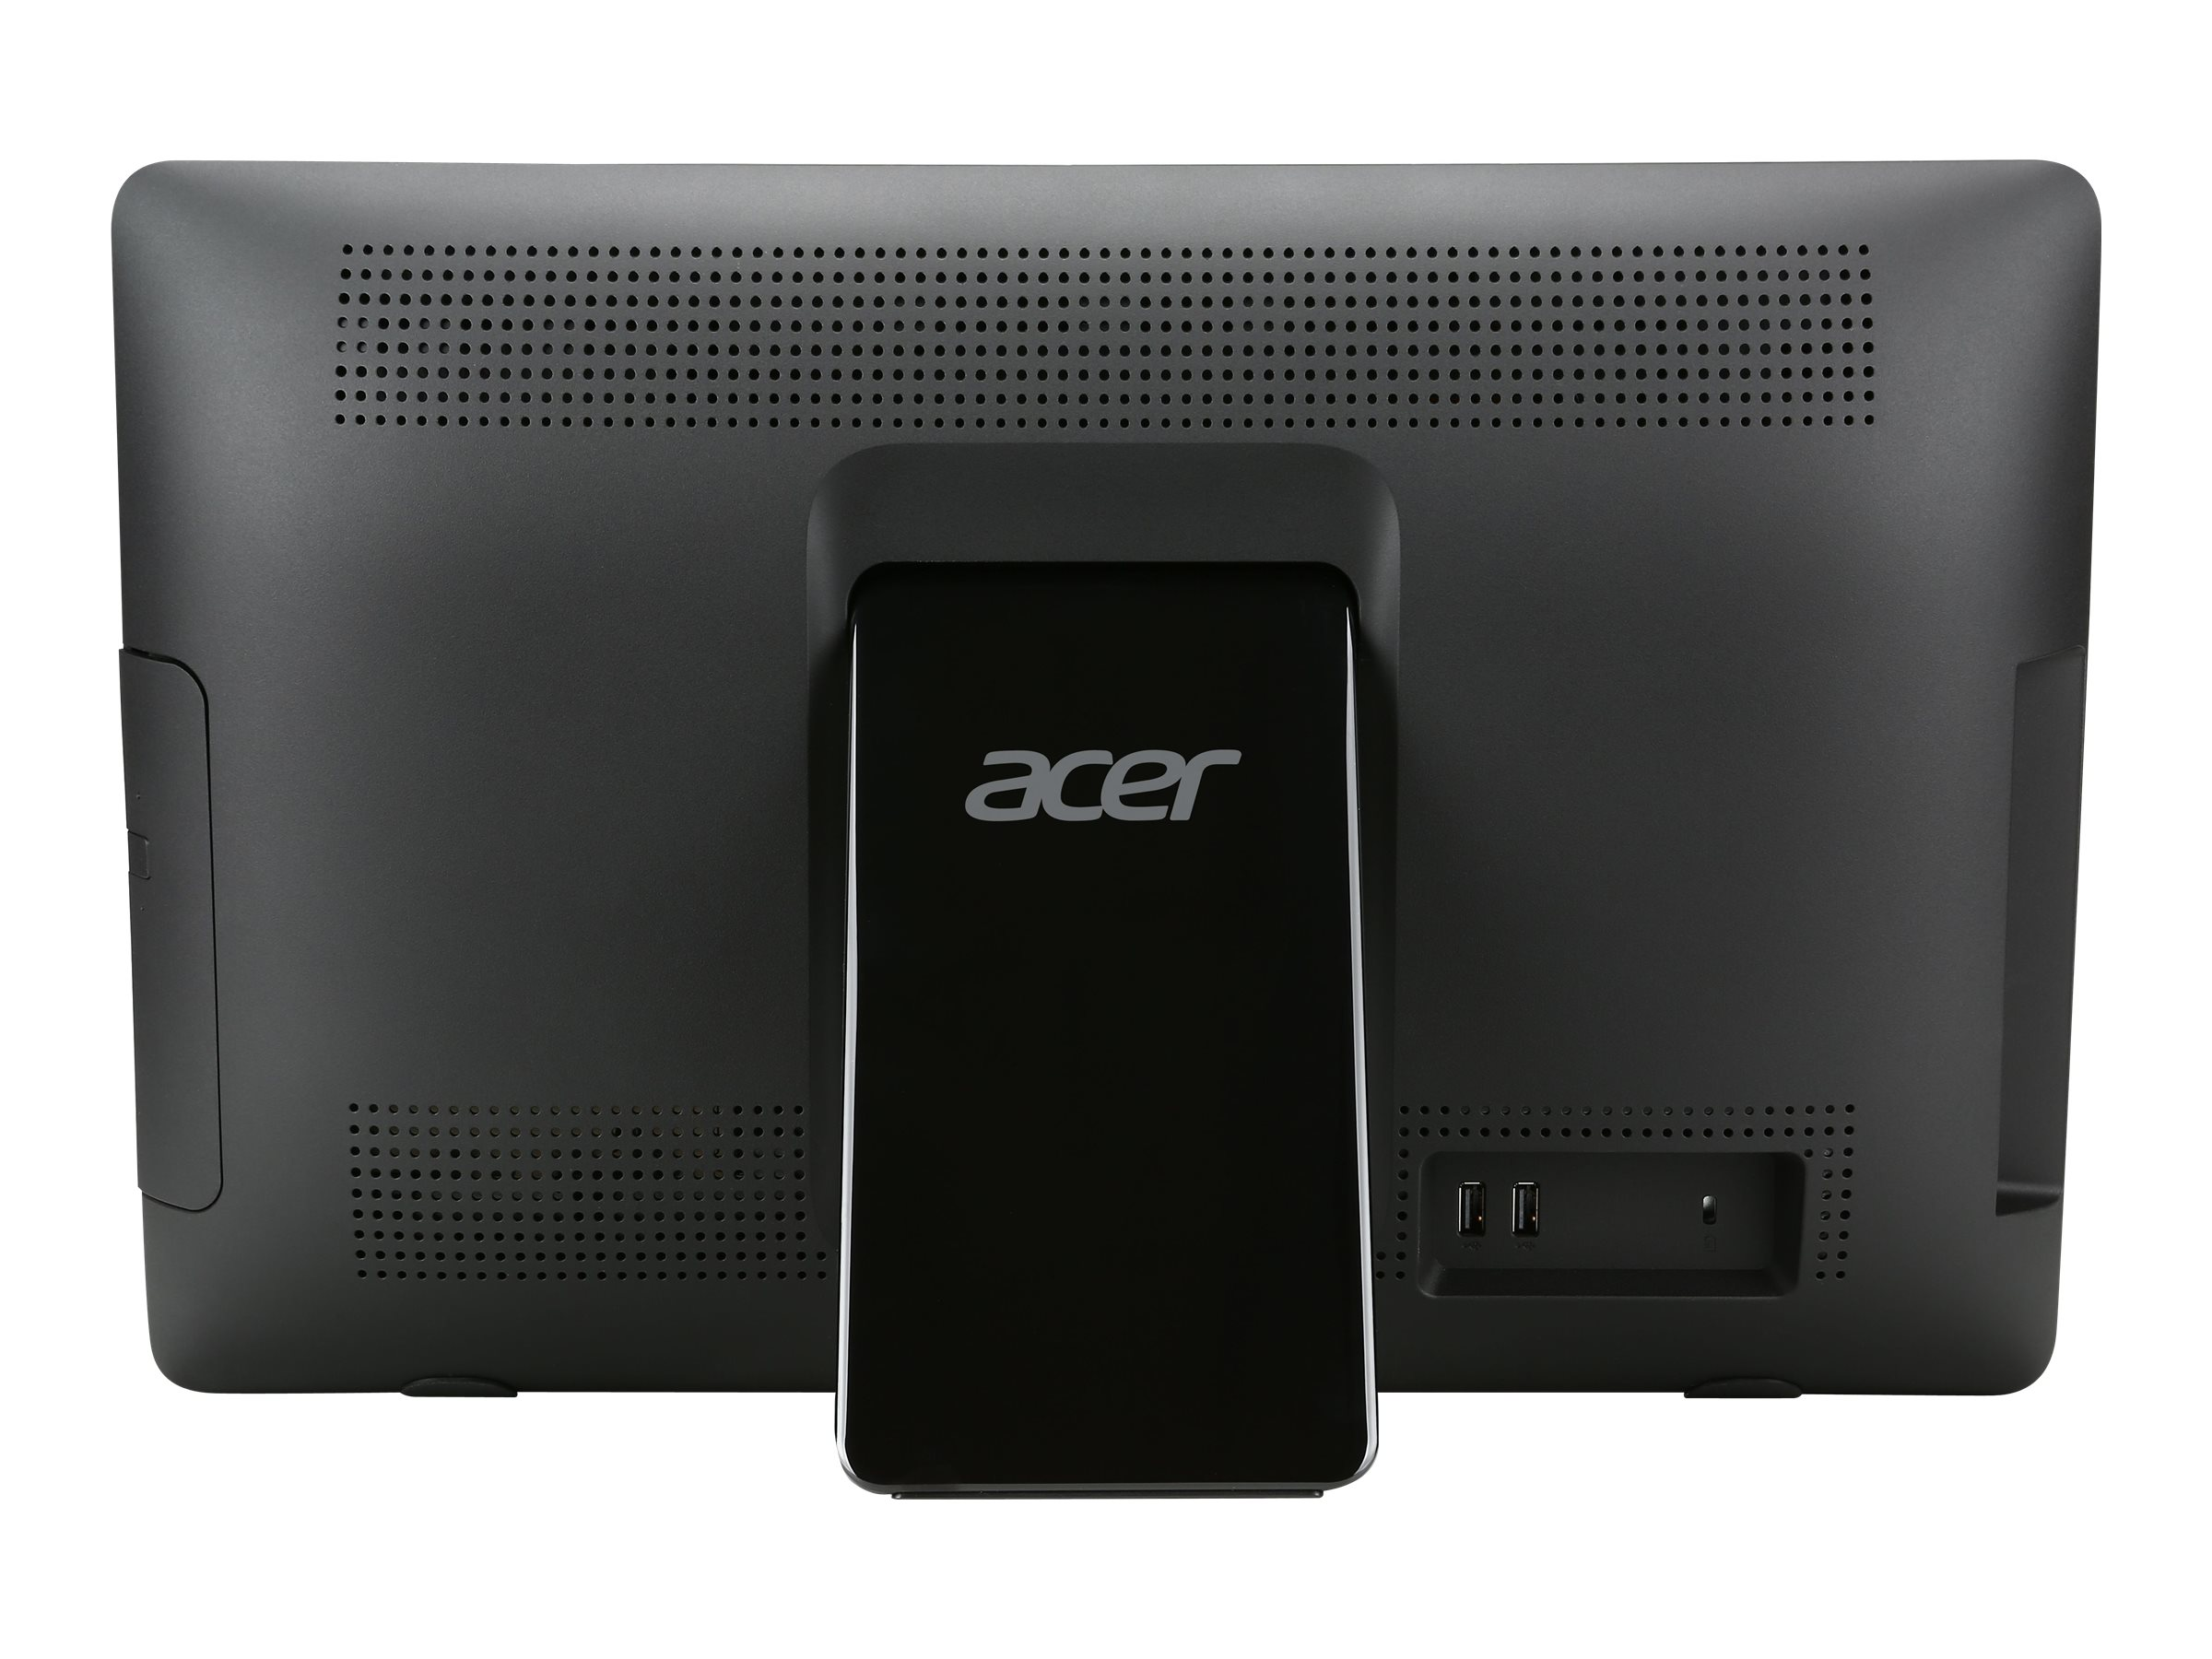 Acer DQ.SUKAA.002 Image 5